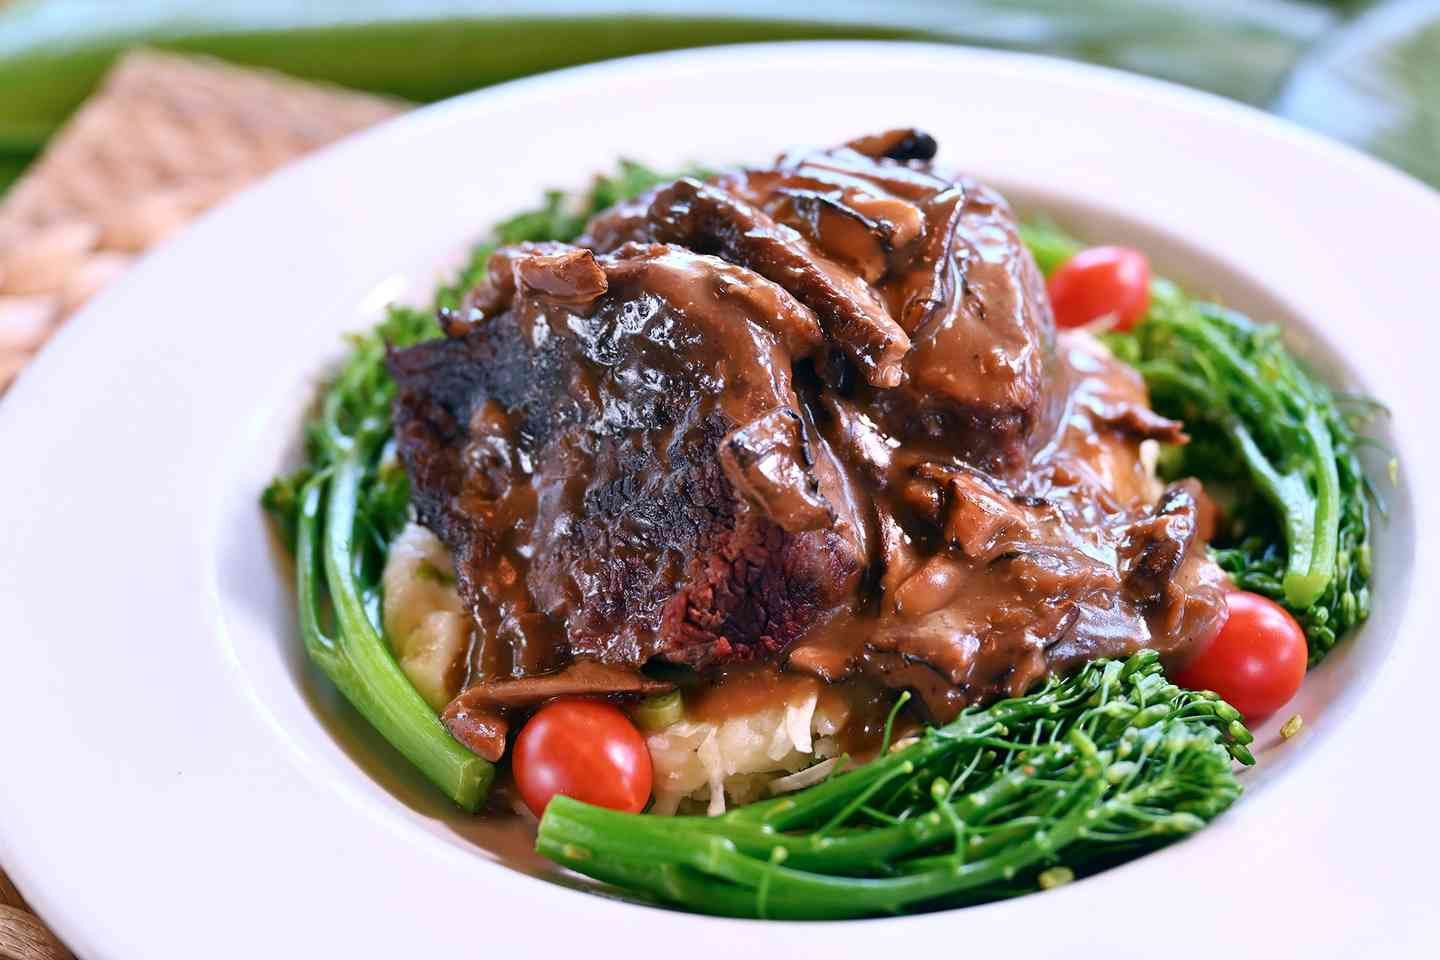 Braised Paniolo Beef Short Rib